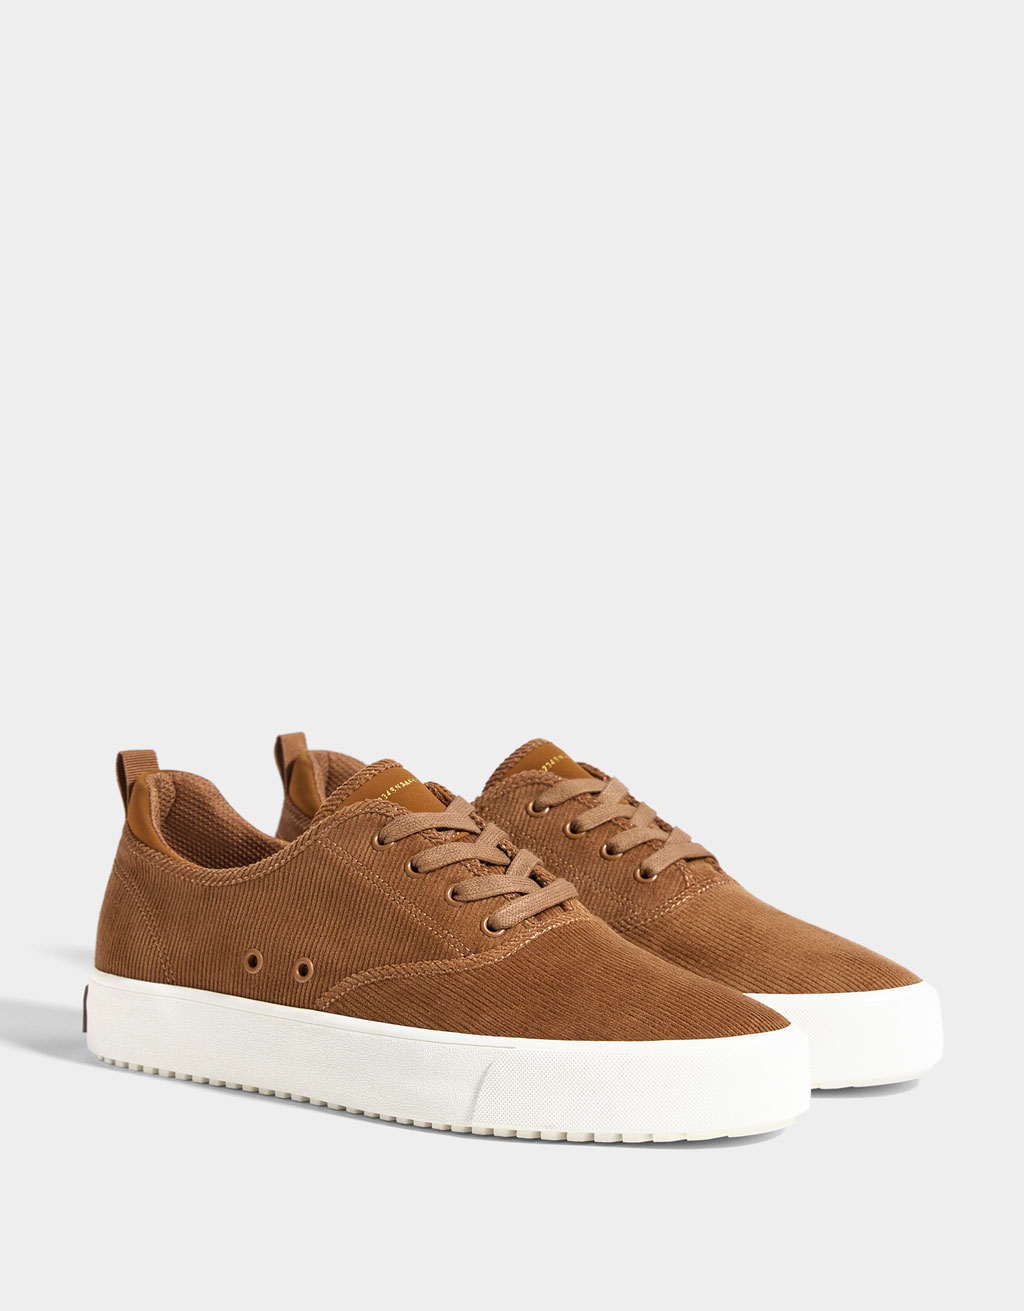 Corduroy herensneakers